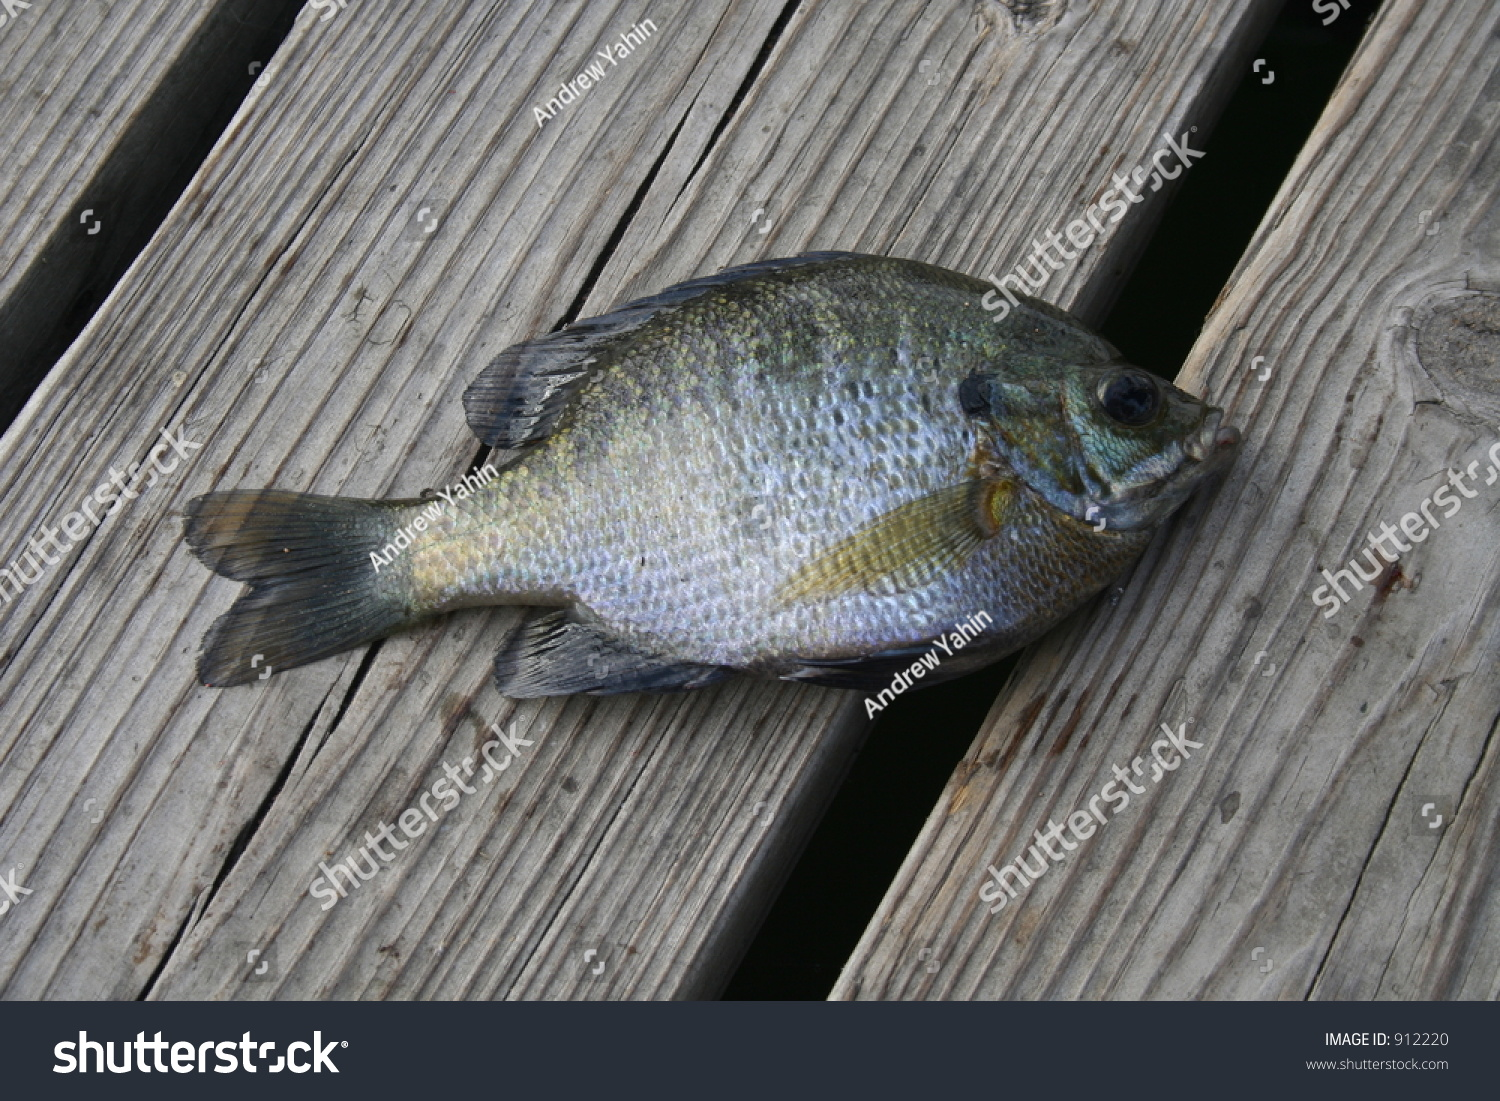 Live fish on wooden deck stock photo 912220 shutterstock for 18th floor balcony live